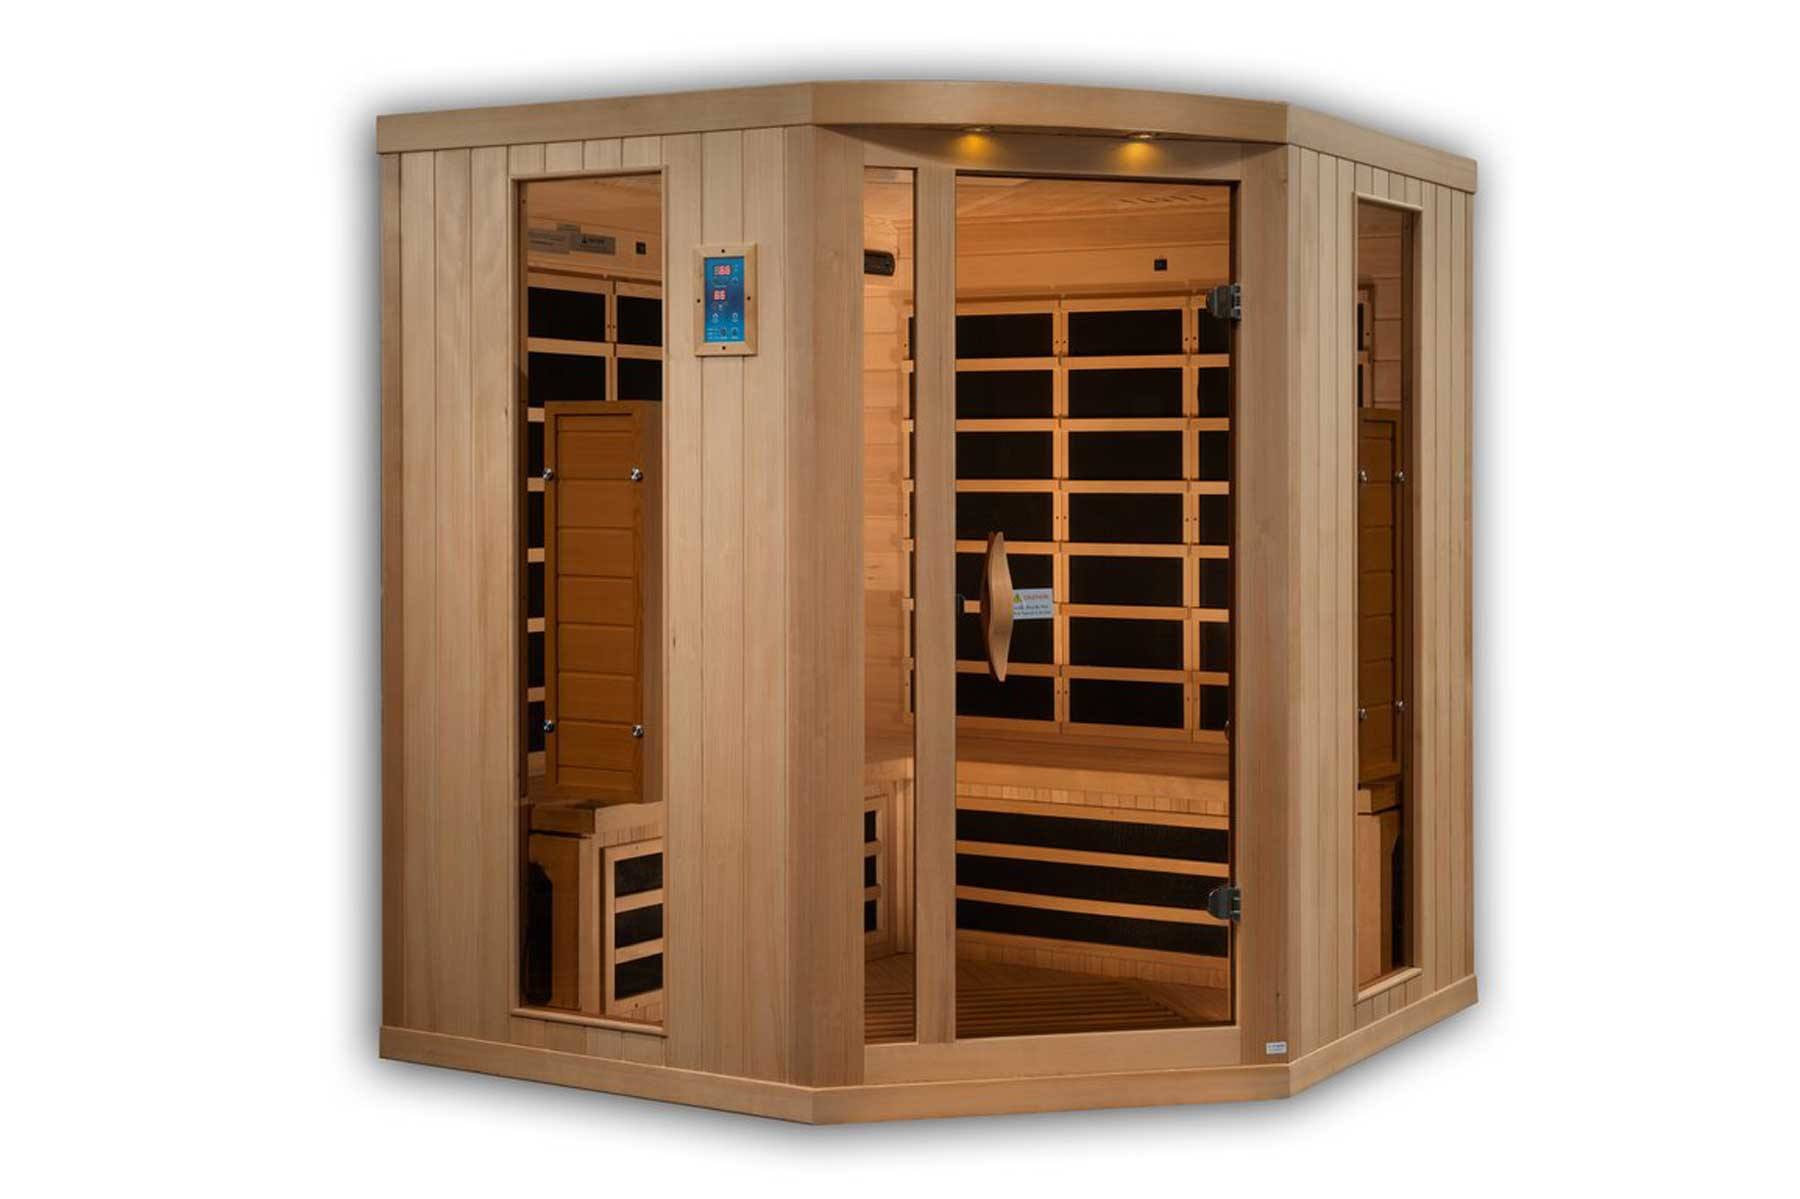 Dynamic Full Spectrum 5-6 Person Corner Ultra Low EMF FAR Infrared Sauna Dynamic Full Spectrum 5-6 Person Corner Ultra Low EMF FAR Infrared Sauna Dynamic Full Spectrum 5-6 Person Corner Ultra Low EMF FAR Infrared Sauna Dynamic Full Spectrum 5-6 Person Corner Ultra Low EMF FAR Infrared Sauna Dynamic Full Spectrum 5-6 Person Corner Ultra Low EMF FAR Infrared Sauna Dynamic Full Spectrum 5-6 Person Corner Ultra Low EMF FAR Infrared Sauna Dynamic Full Spectrum 5-6 Person Corner Ultra Low EMF FAR Infrared Sauna Dynamic Full Spectrum 5-6 Person Corner Ultra Low EMF FAR Infrared Sauna Dynamic Full Spectrum 5-6 Person Corner Ultra Low EMF FAR Infrared Sauna Dynamic Full Spectrum 5-6 Person Corner Ultra Low EMF FAR Infrared Sauna Dynamic Full Spectrum 5-6 Person Corner Ultra Low EMF FAR Infrared Sauna Dynamic Full Spectrum 5-6 Person Corner Ultra Low EMF FAR Infrared Sauna